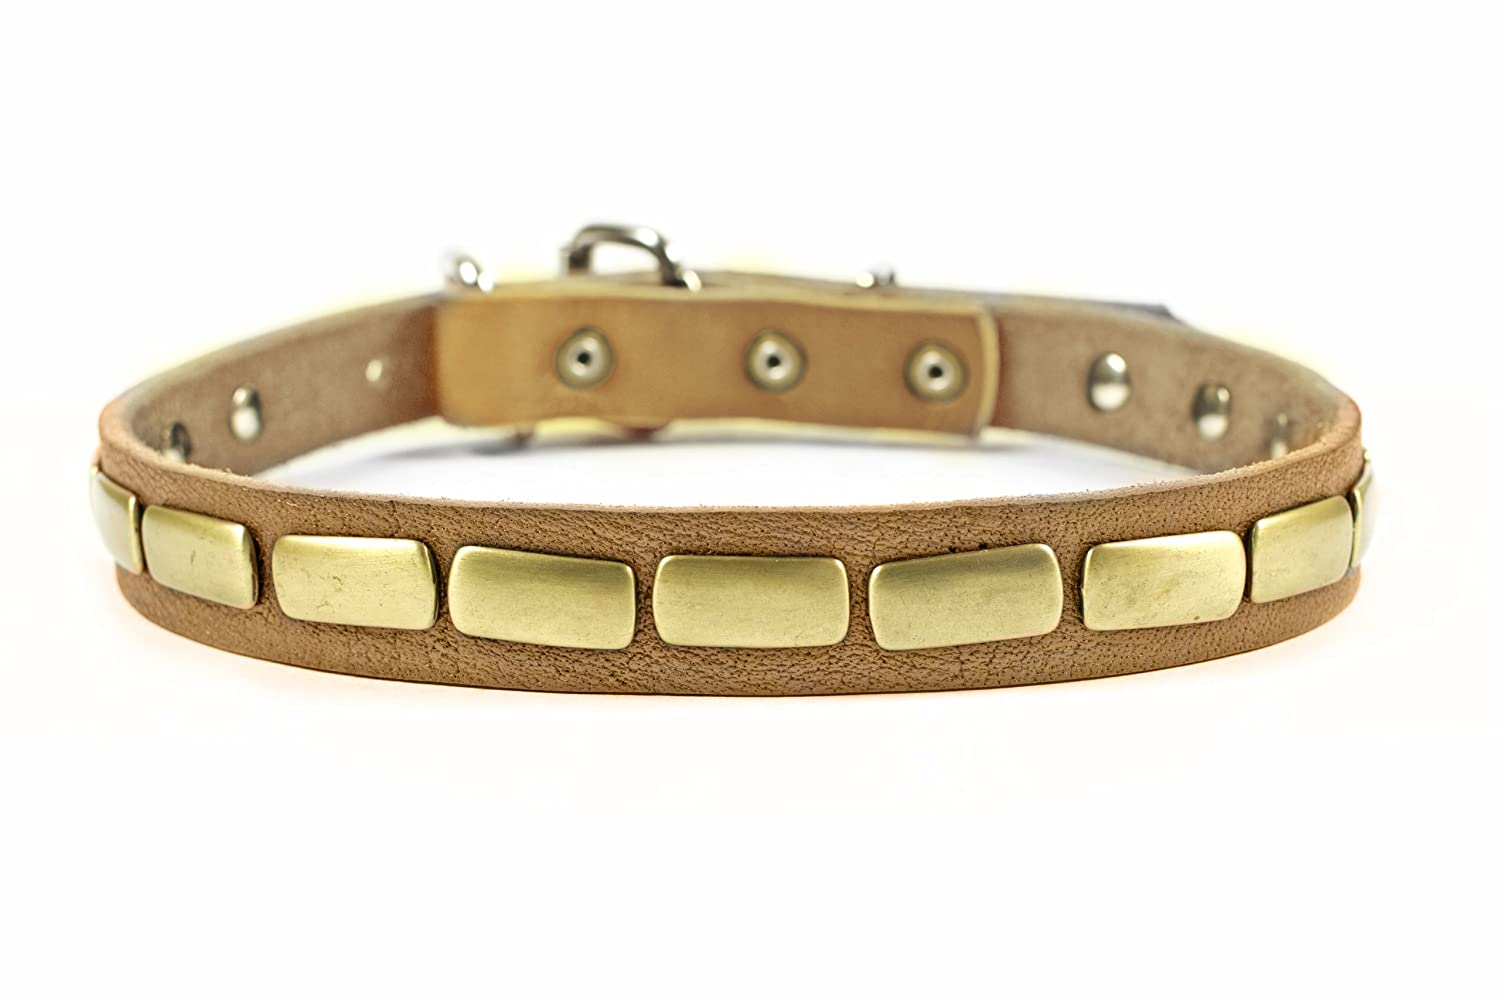 Dean and Tyler  PLATED BEAUTY , Leather Dog Collar with Attractive Antiqued Plate Tan Size 18-Inch by 1-Inch Fits Neck 16-Inch to 20-Inch